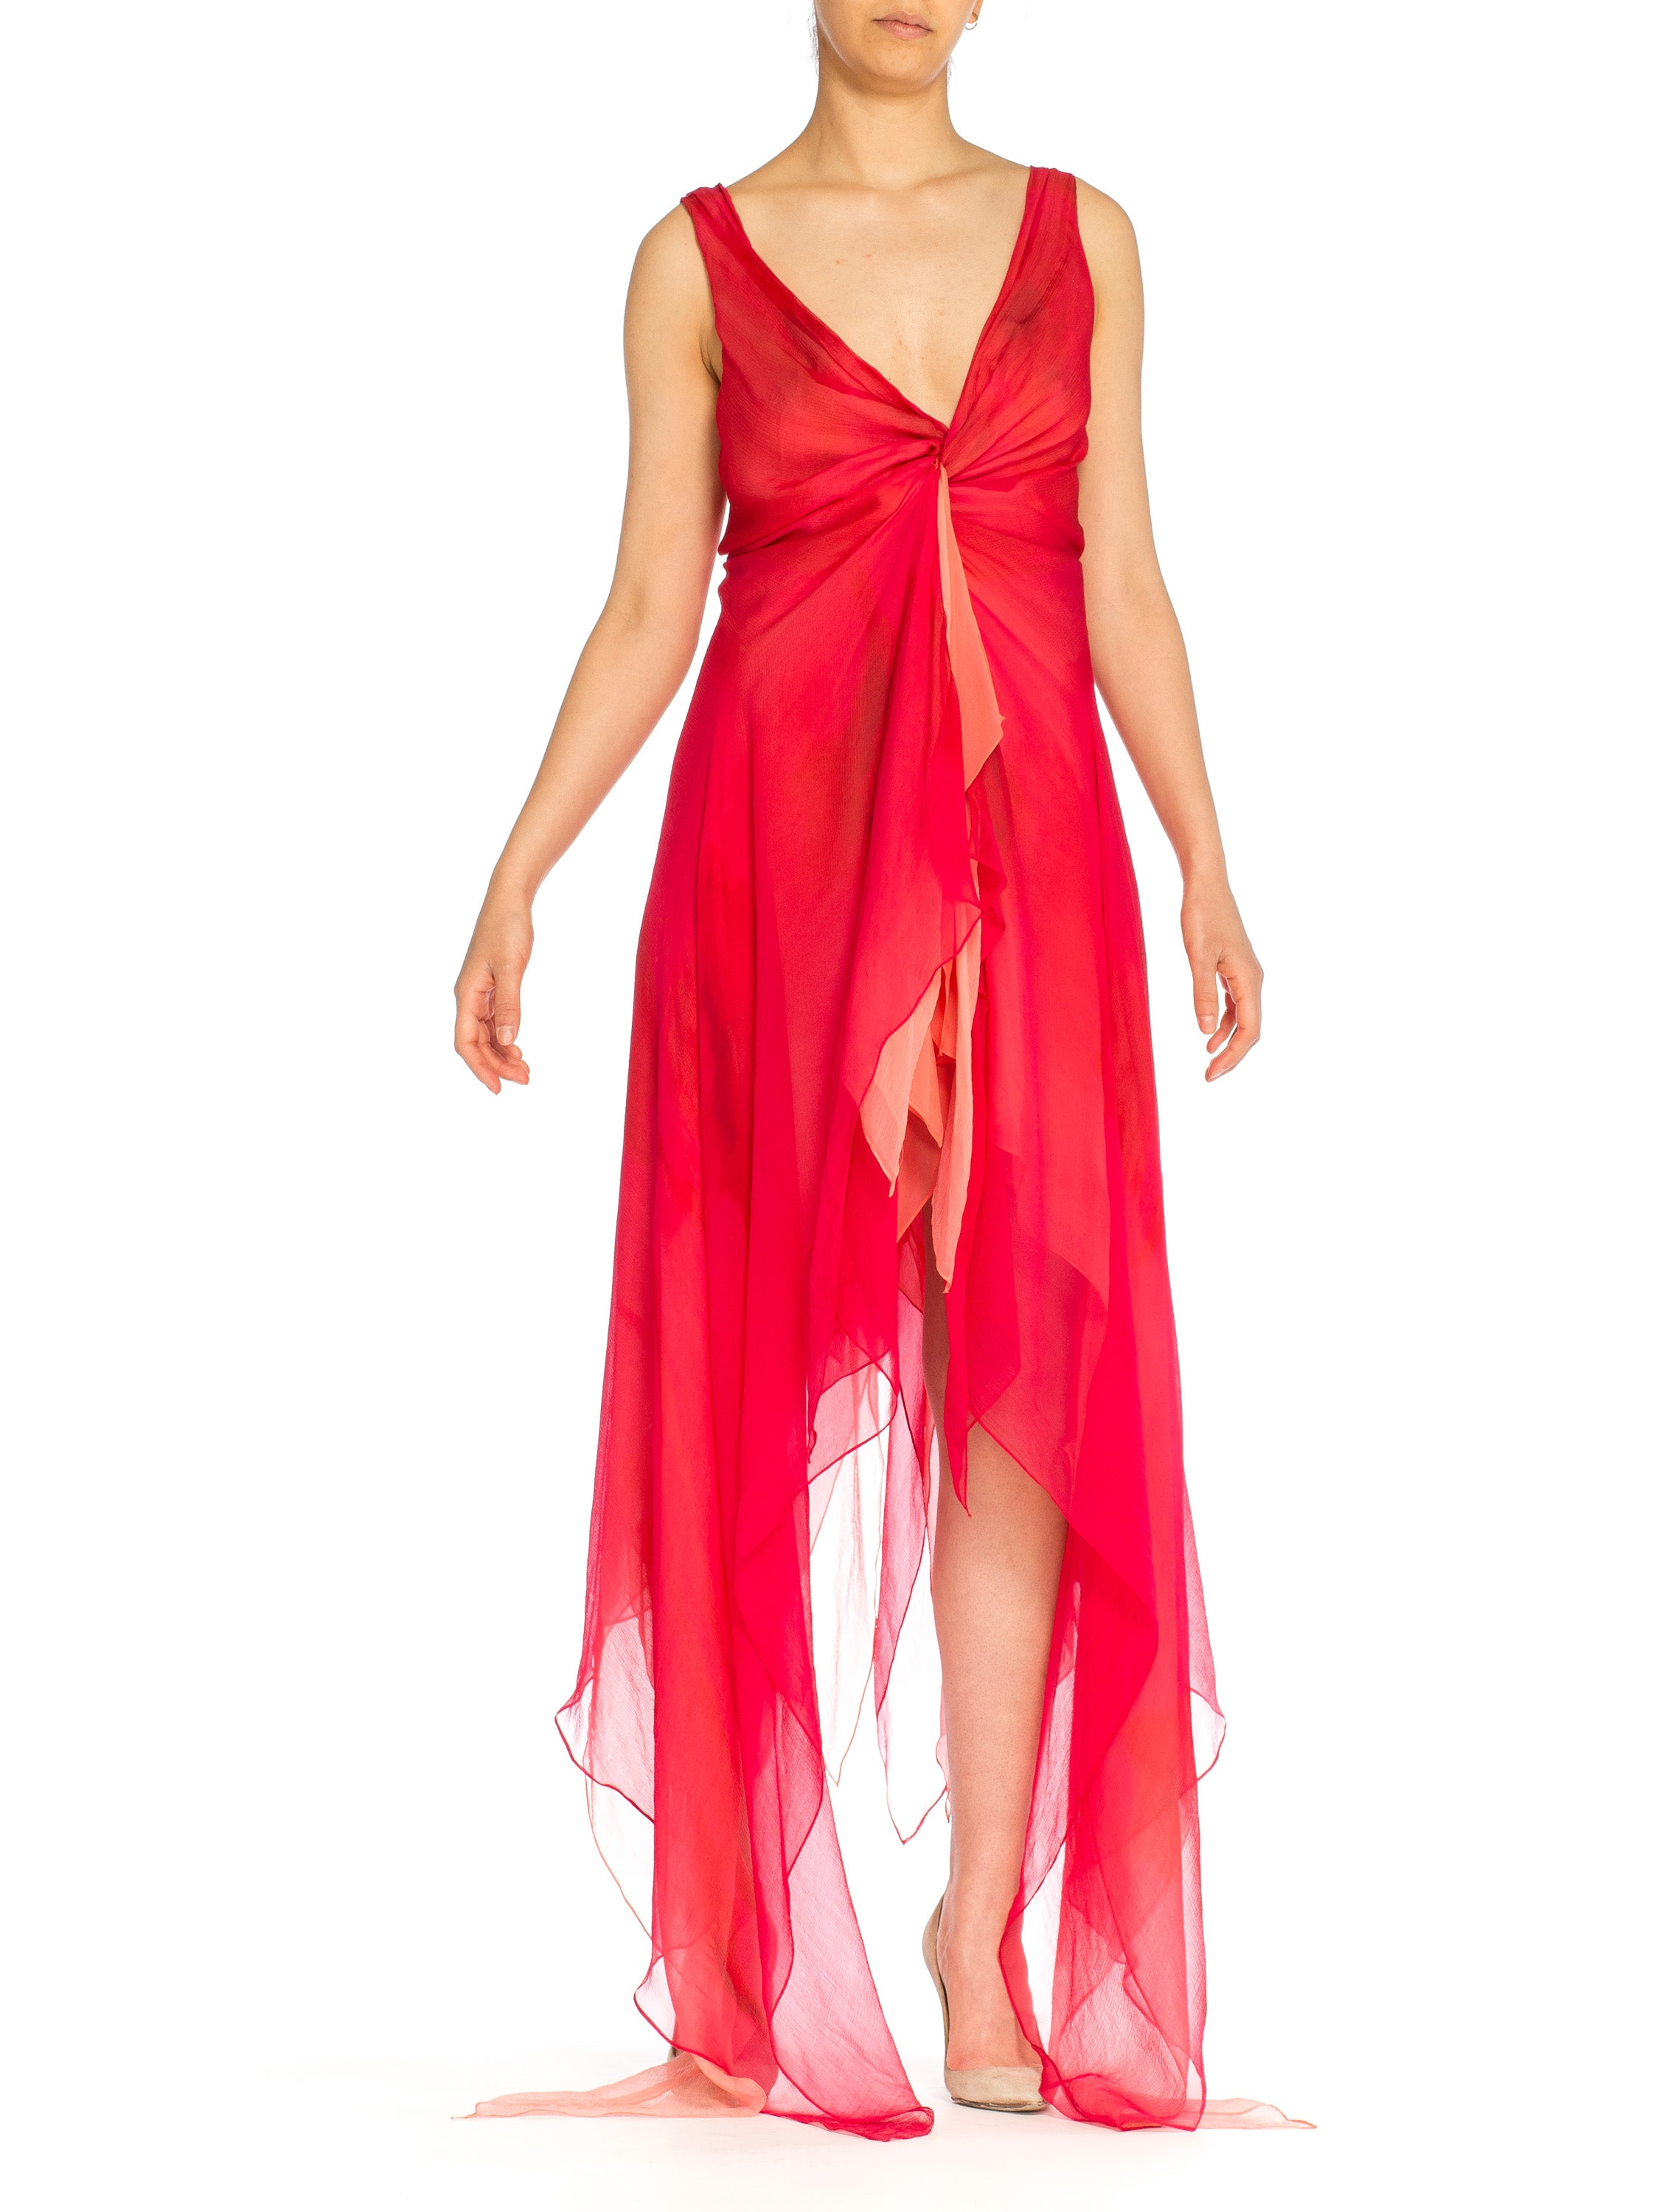 Red and Pink Chiffon Donna Karan